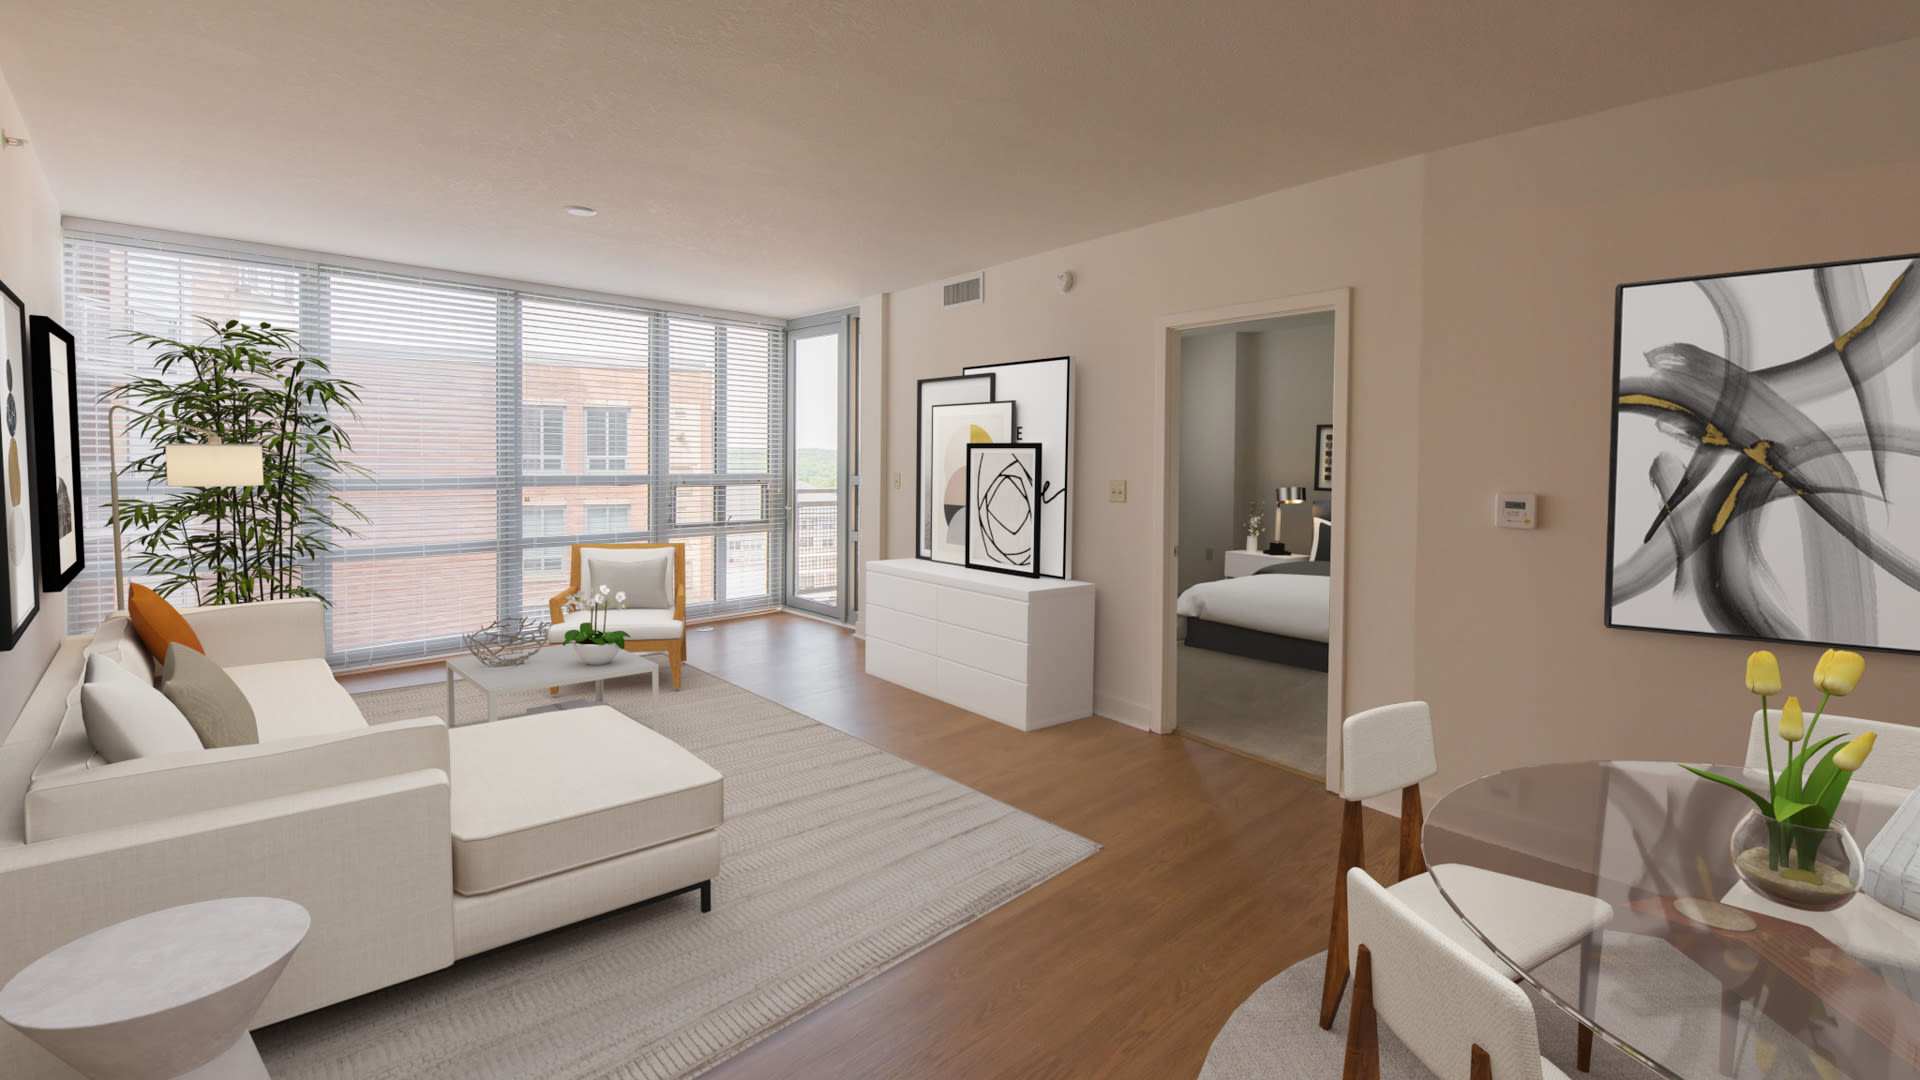 The Veridian Apartments - Living Room with Oversized Private Balcony and Real Oak Flooring